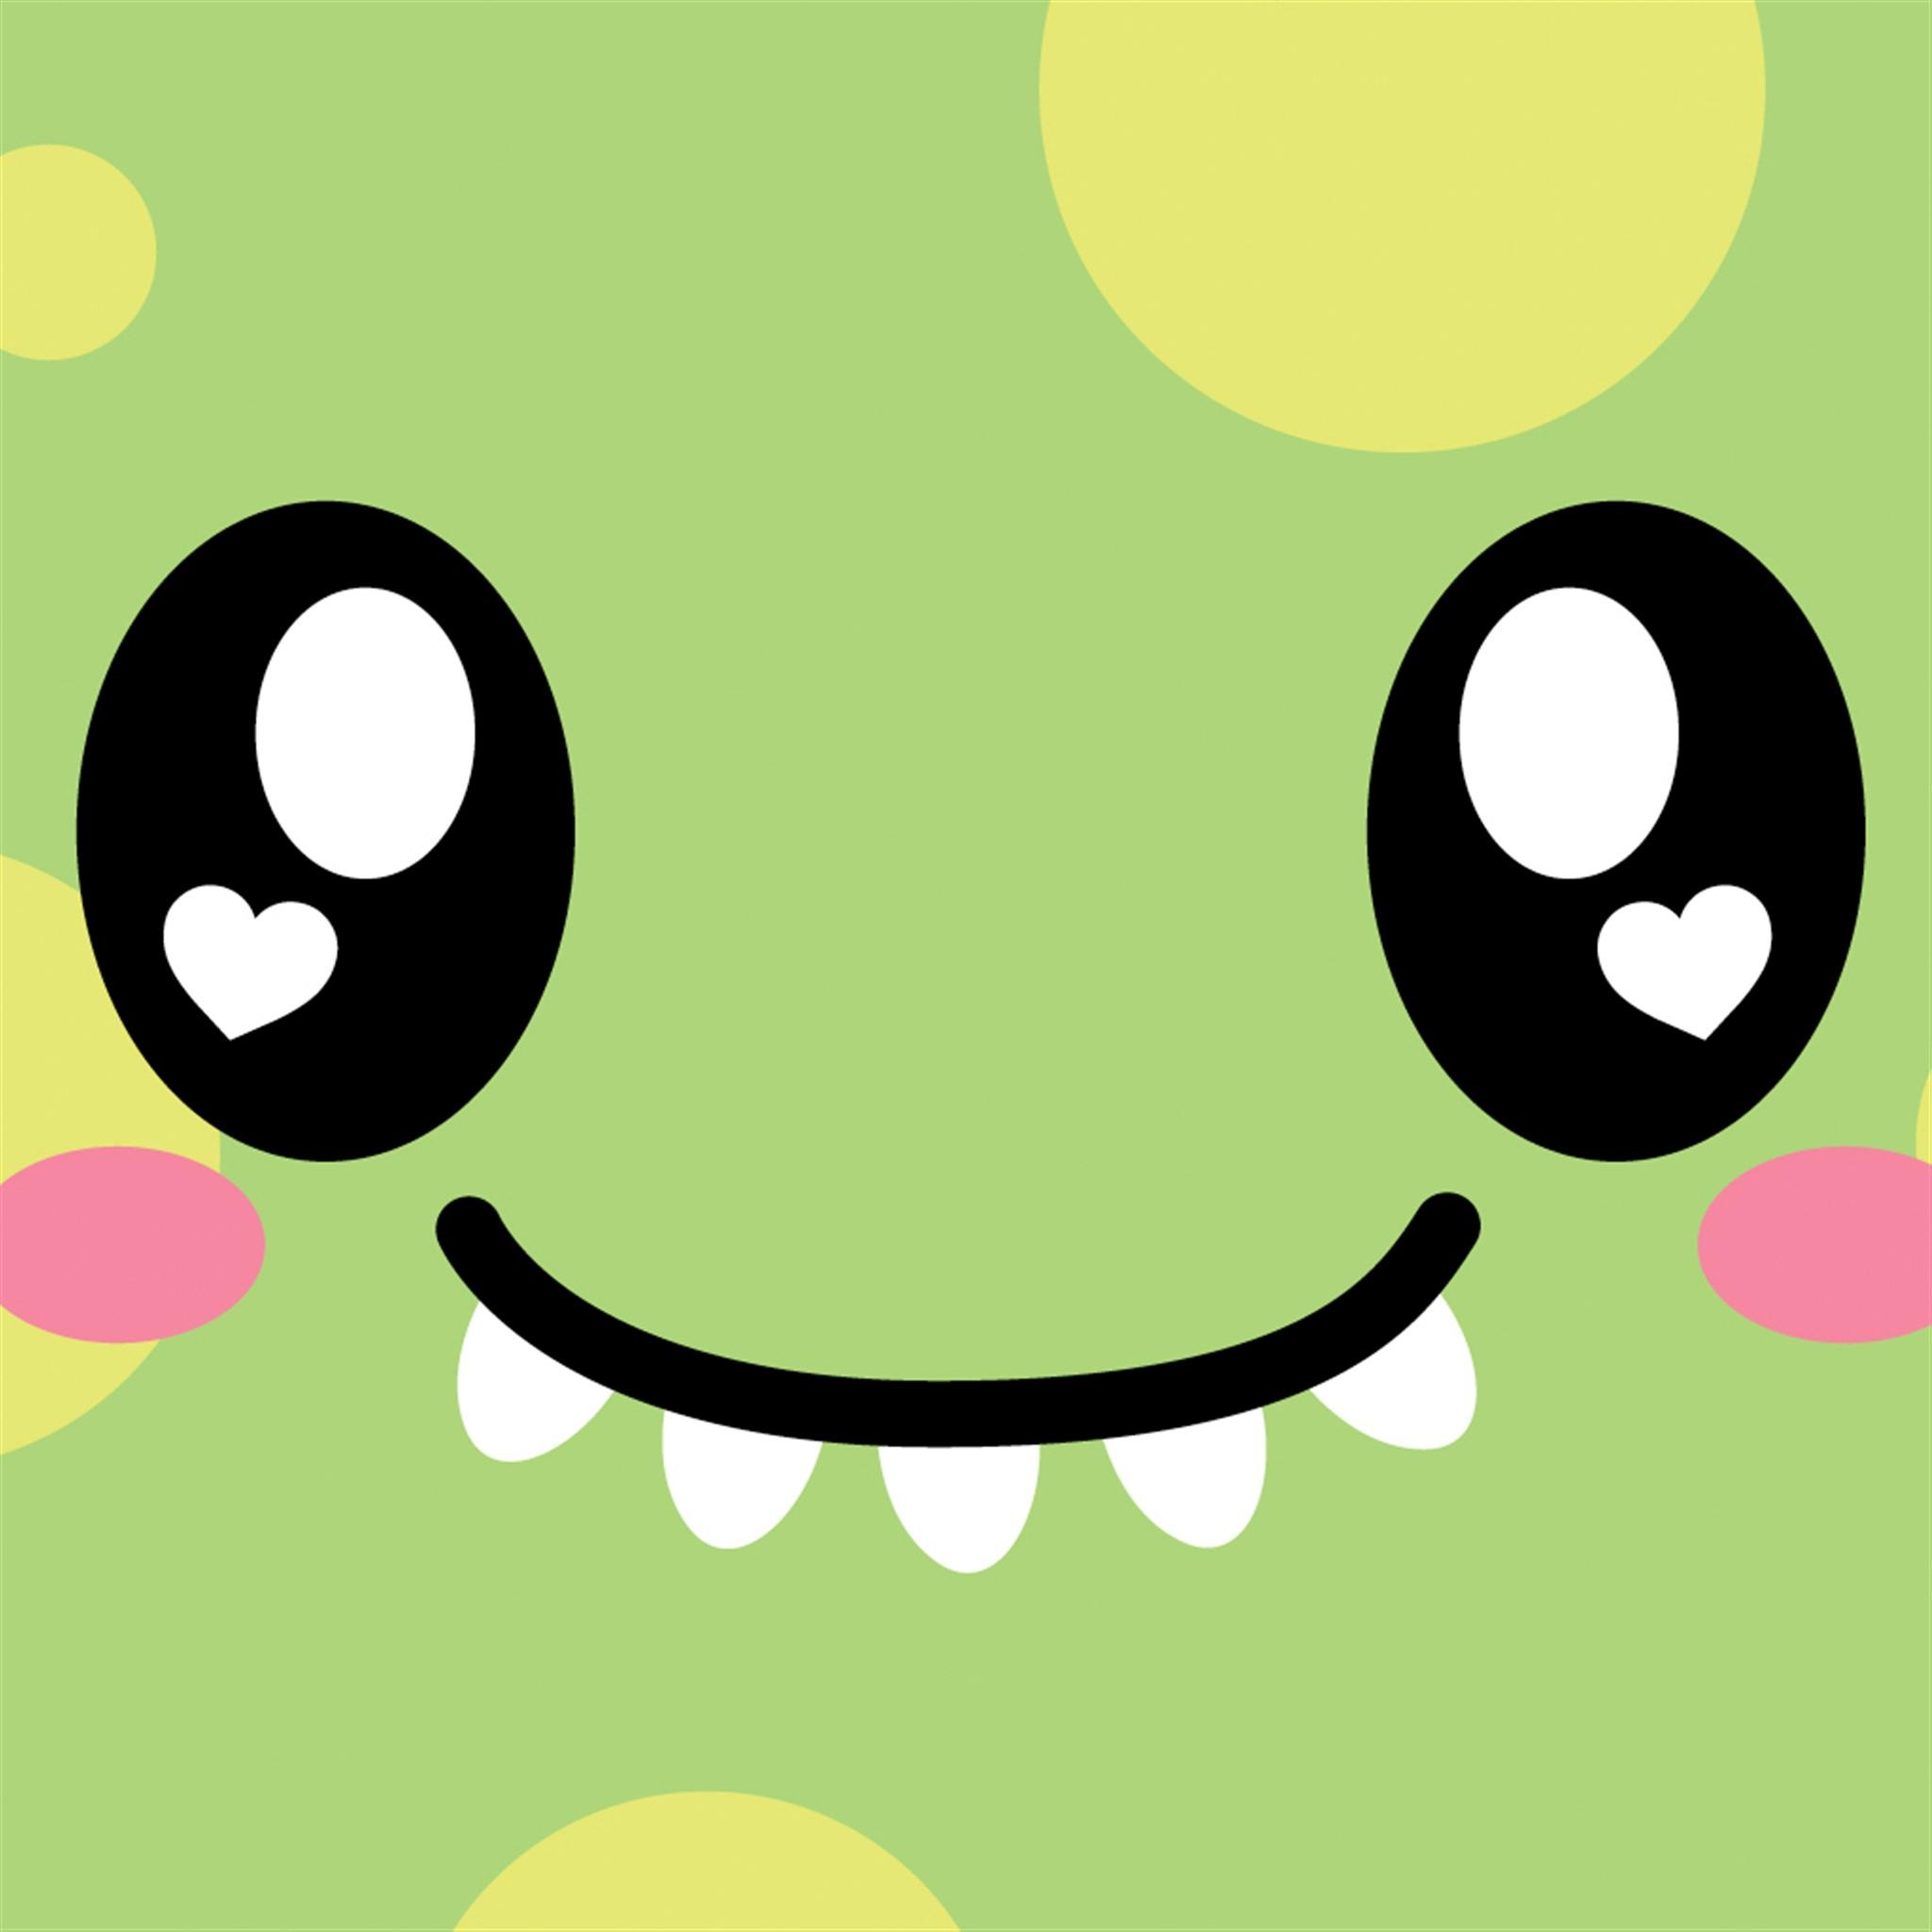 Cute Backgrounds: Cute Wallpaper Backgrounds For IPad (68+ Images